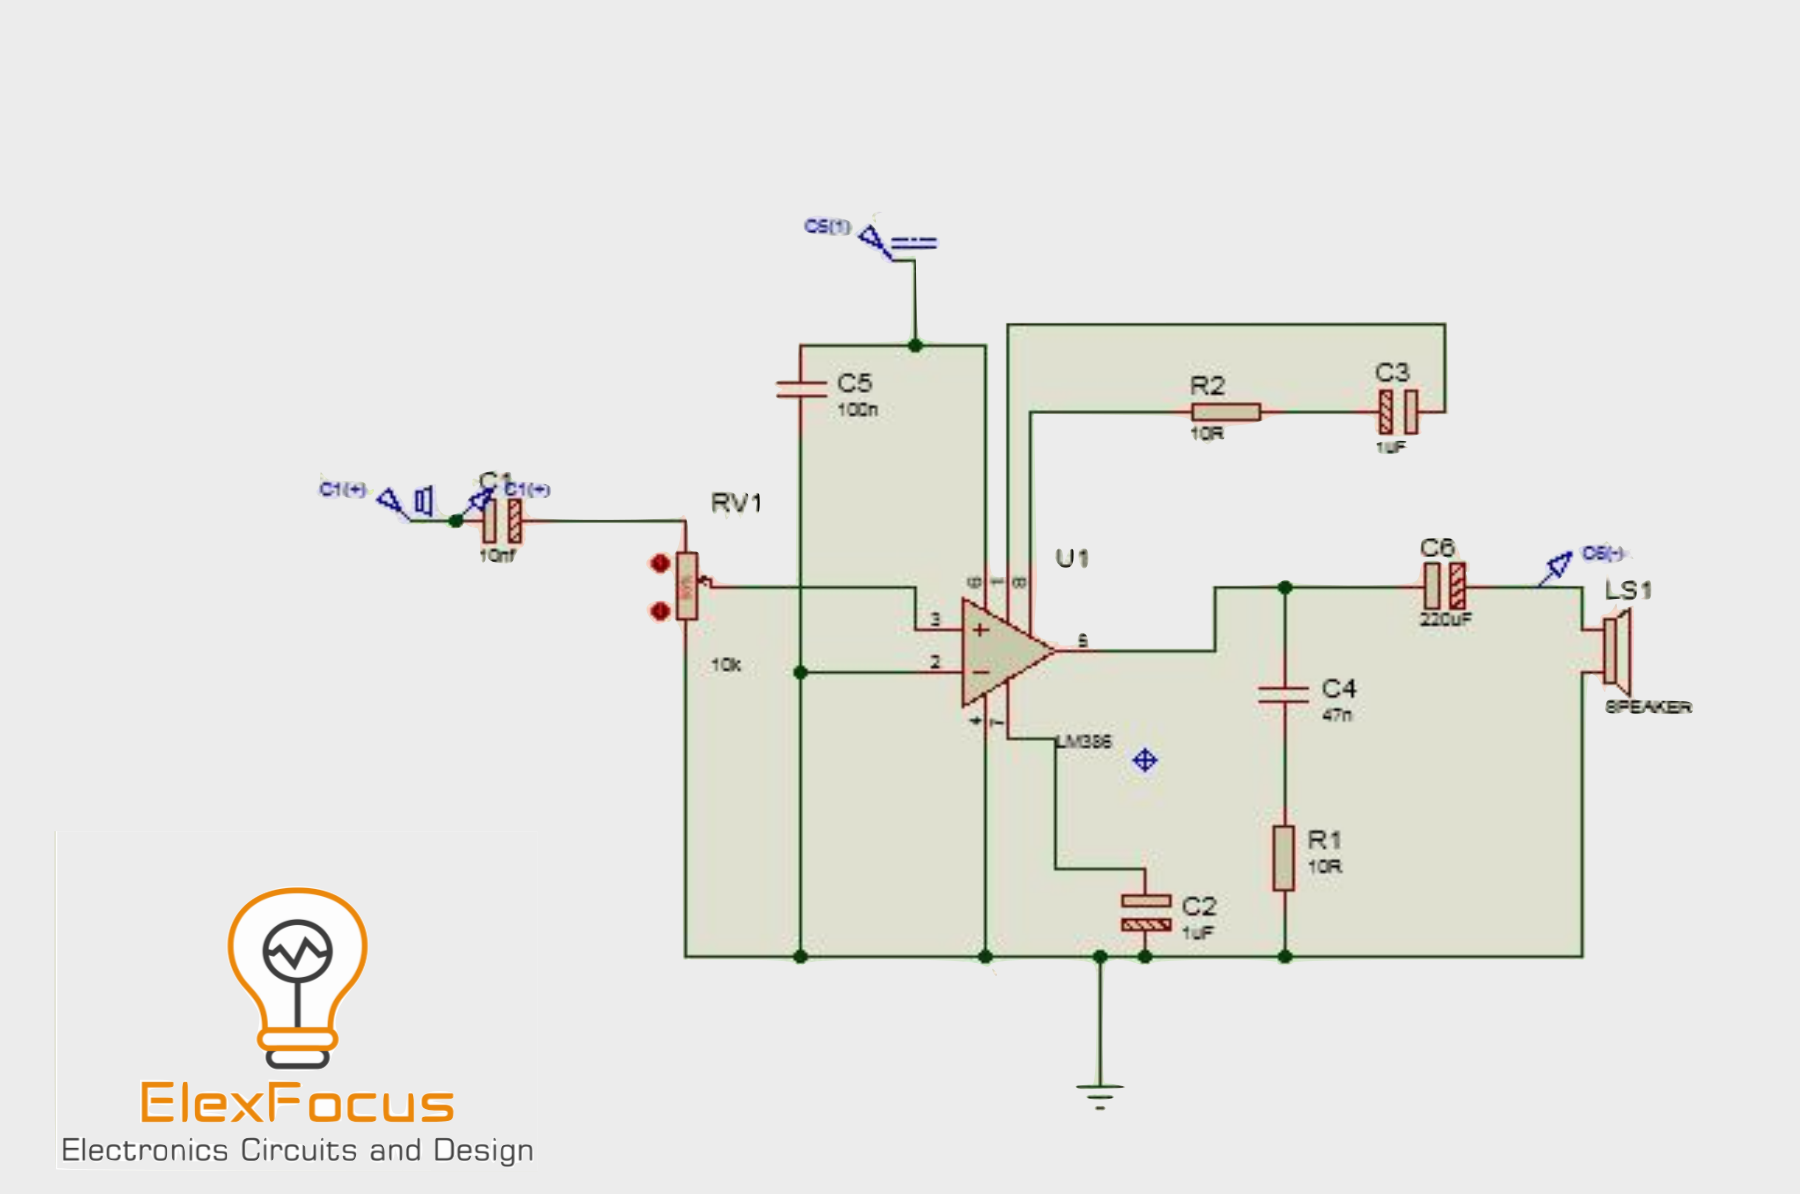 Lm386 Audio Amplifier Circuit With Proteus Simulation Basic 1000w Power Diagram Electronic Circuits For More Details And Complete Guide Go To The Website Audioamplifier